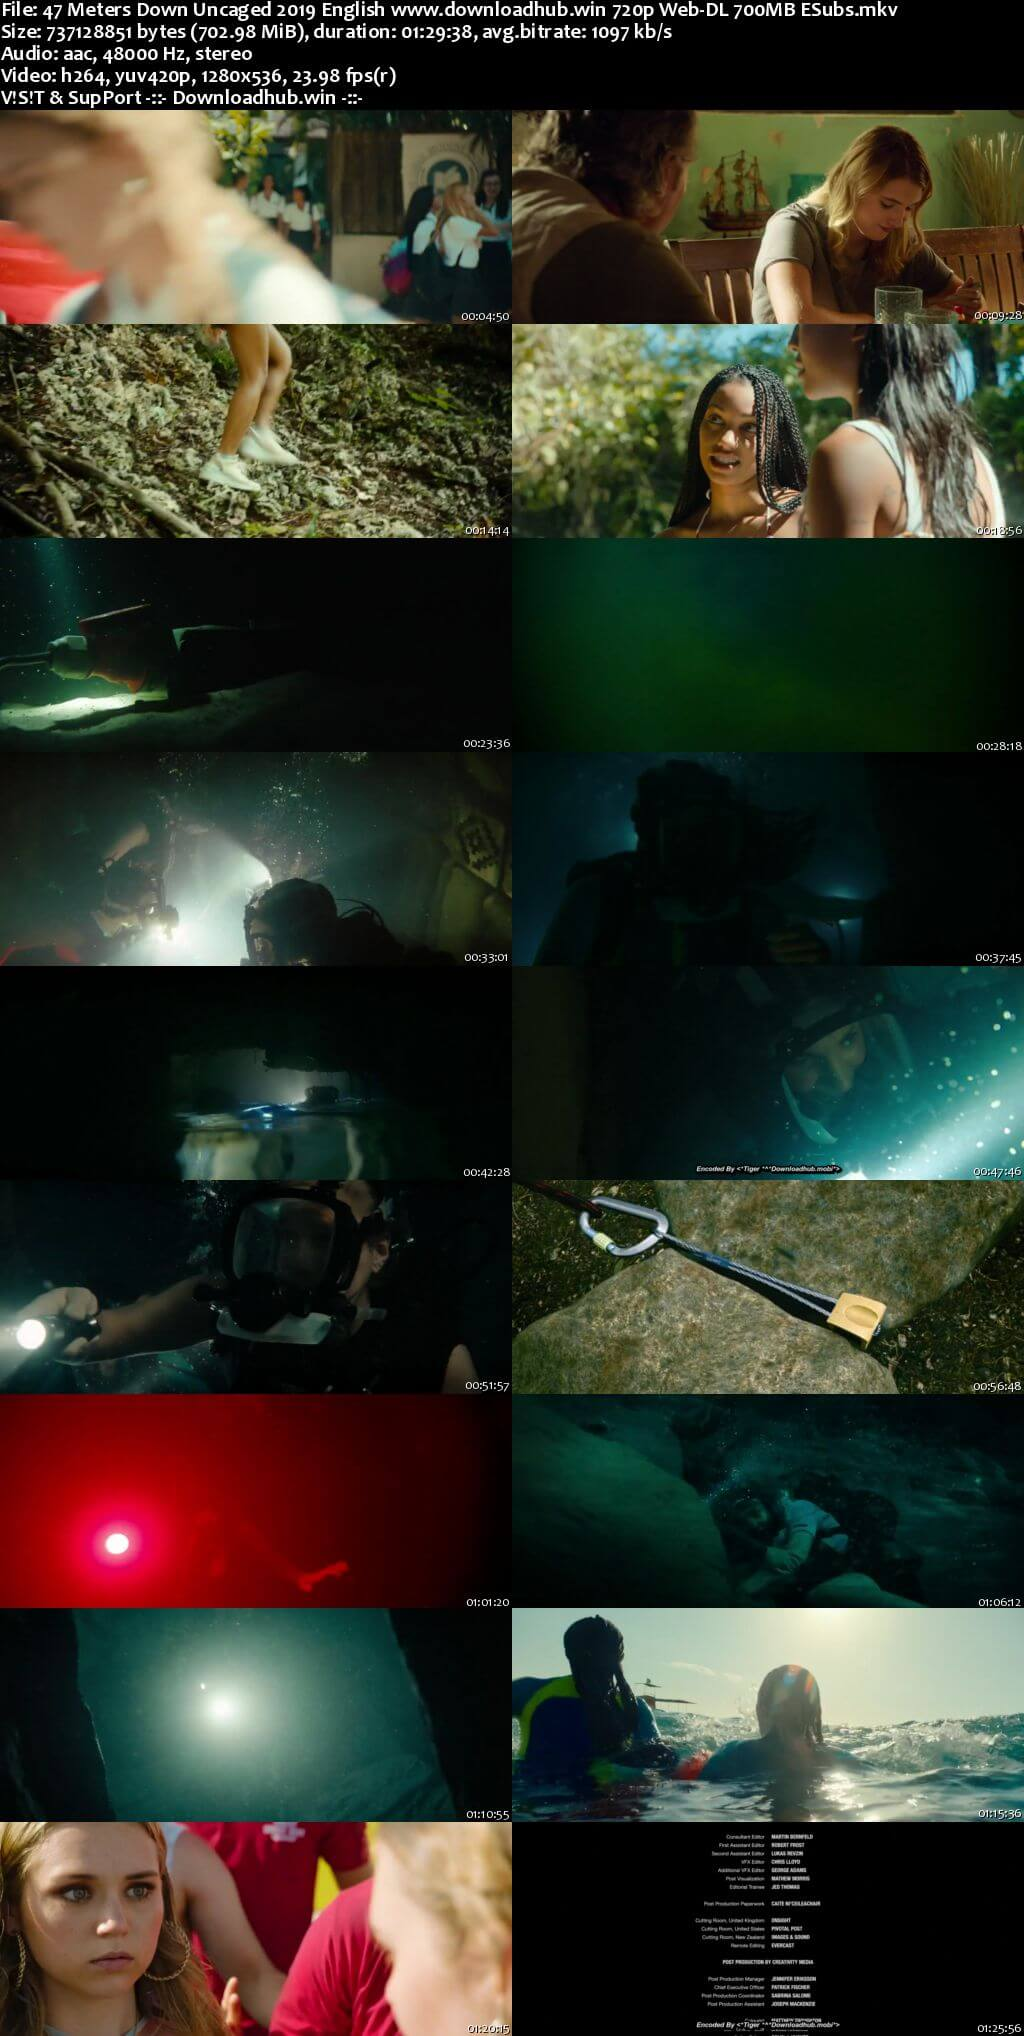 47 Meters Down Uncaged 2019 English 720p Web-DL 700MB ESubs